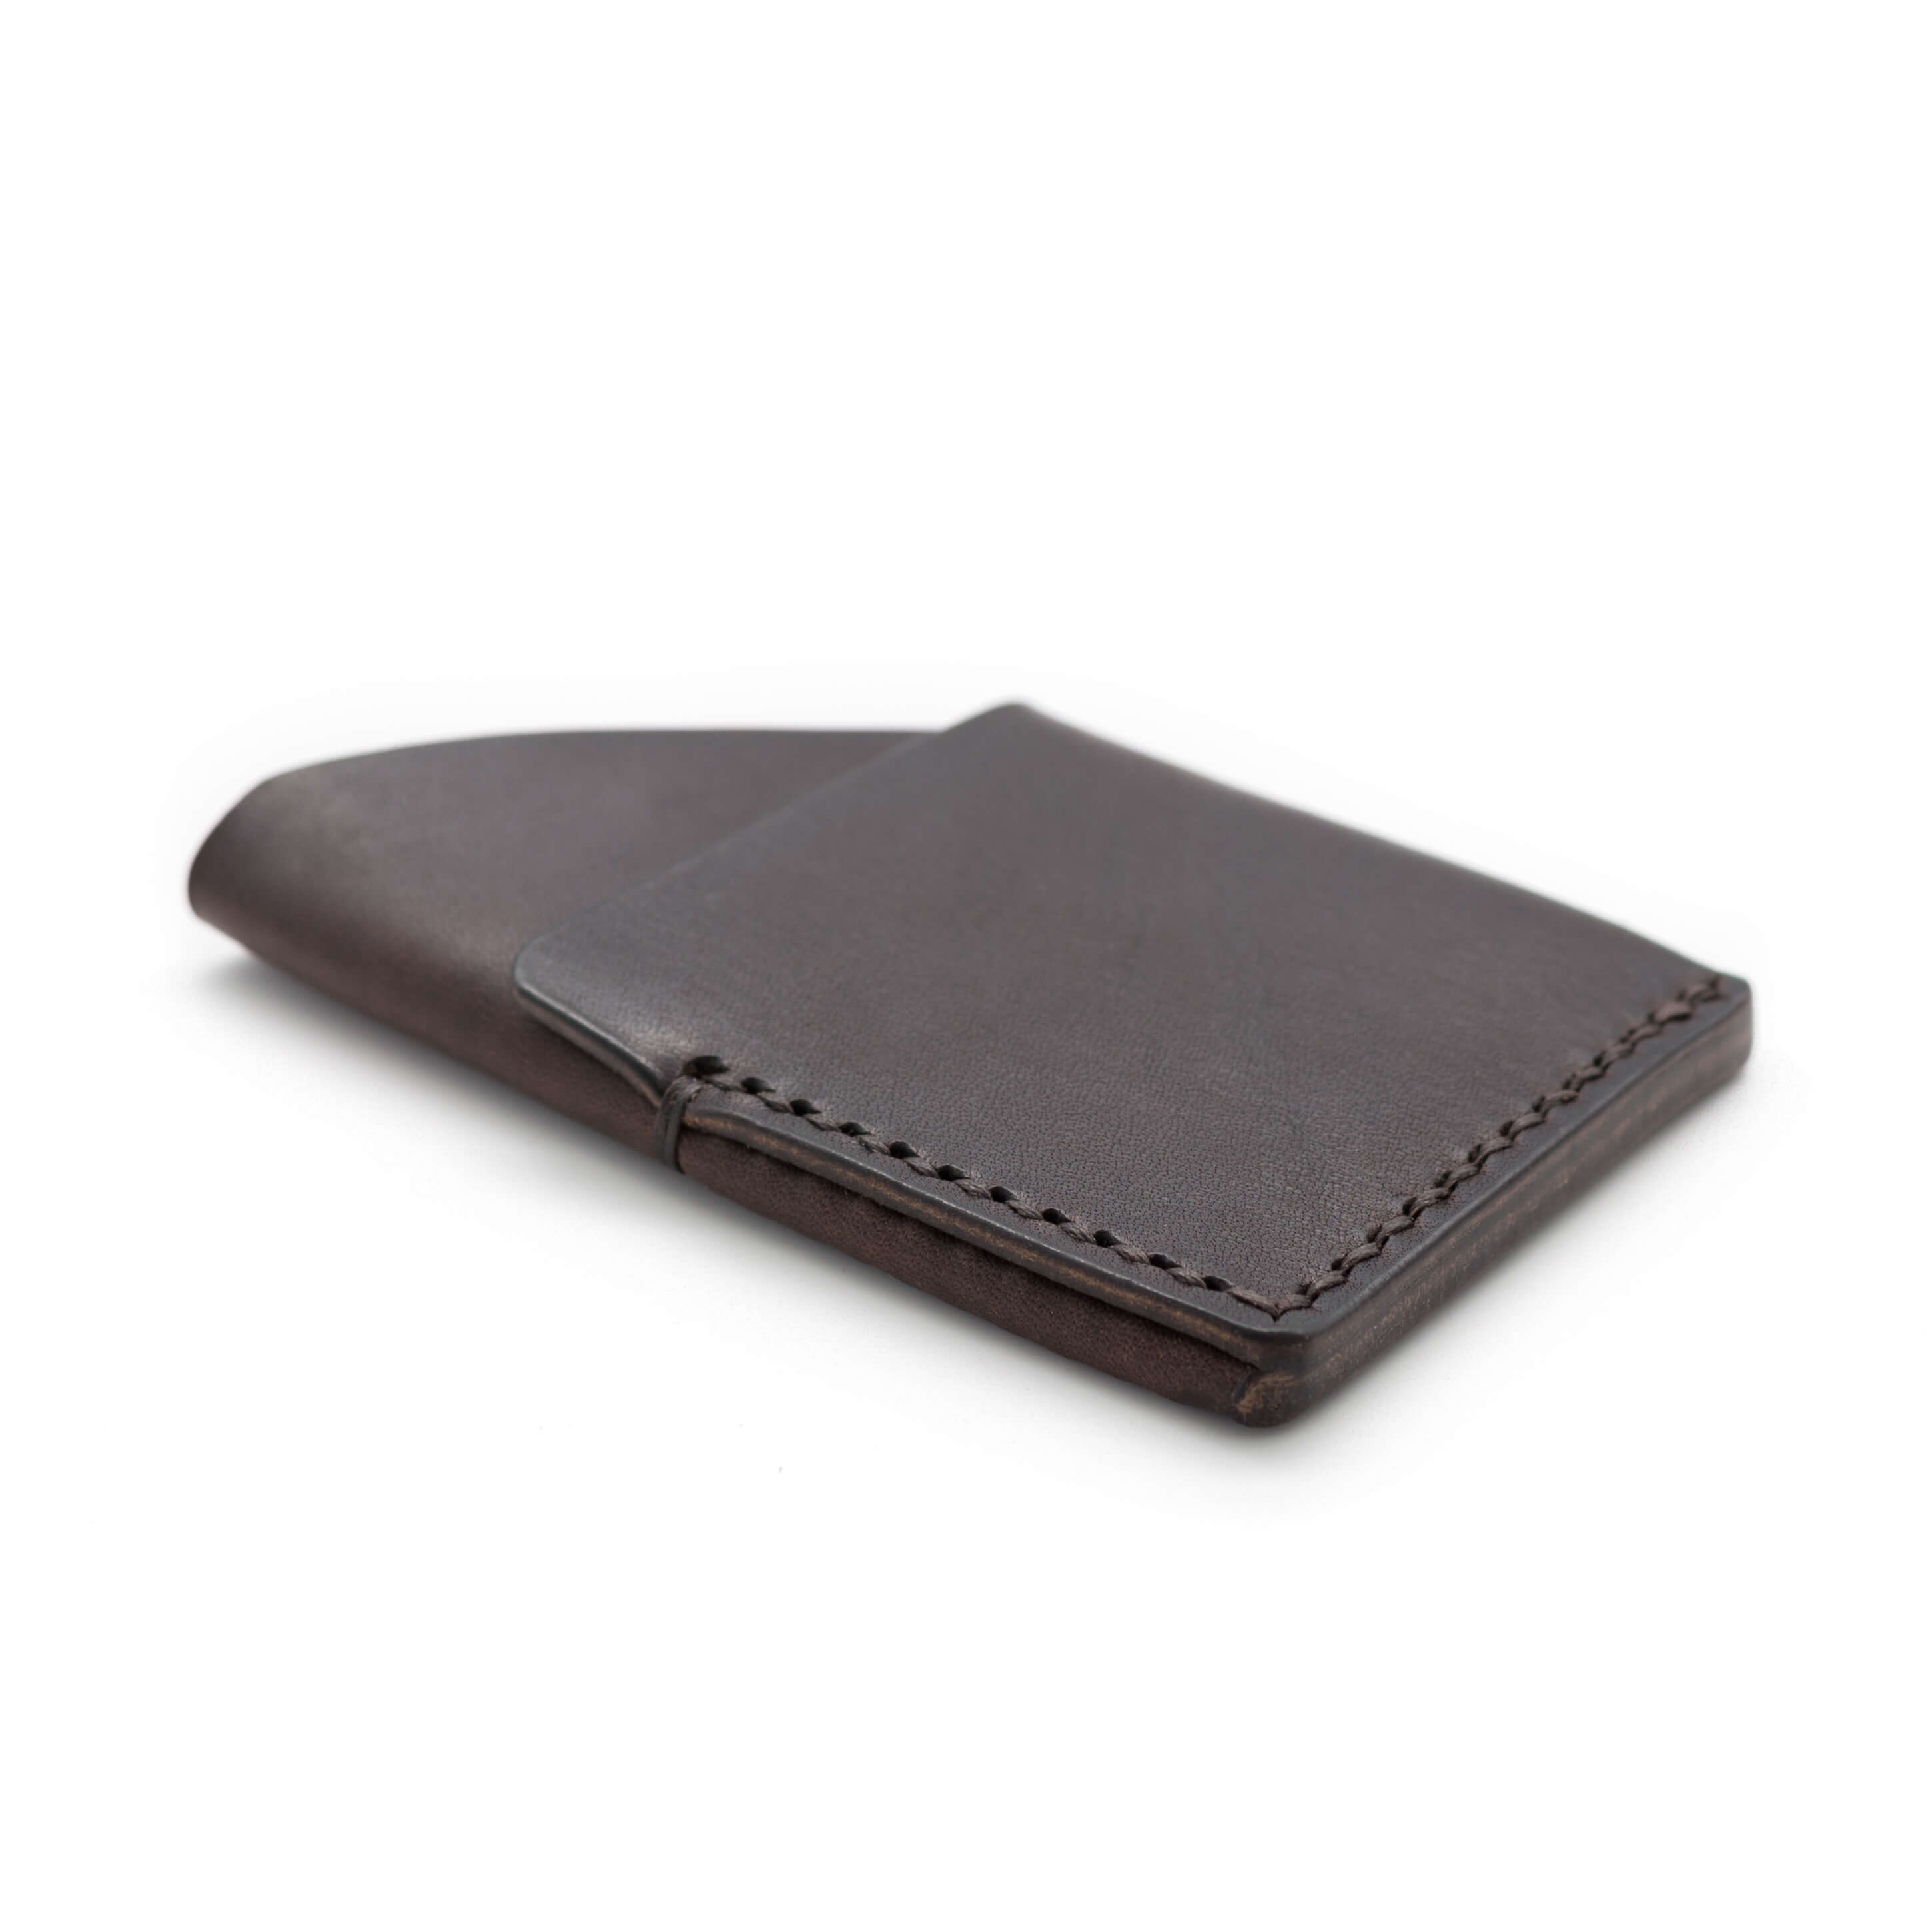 hand stitched leather wallet, card holder